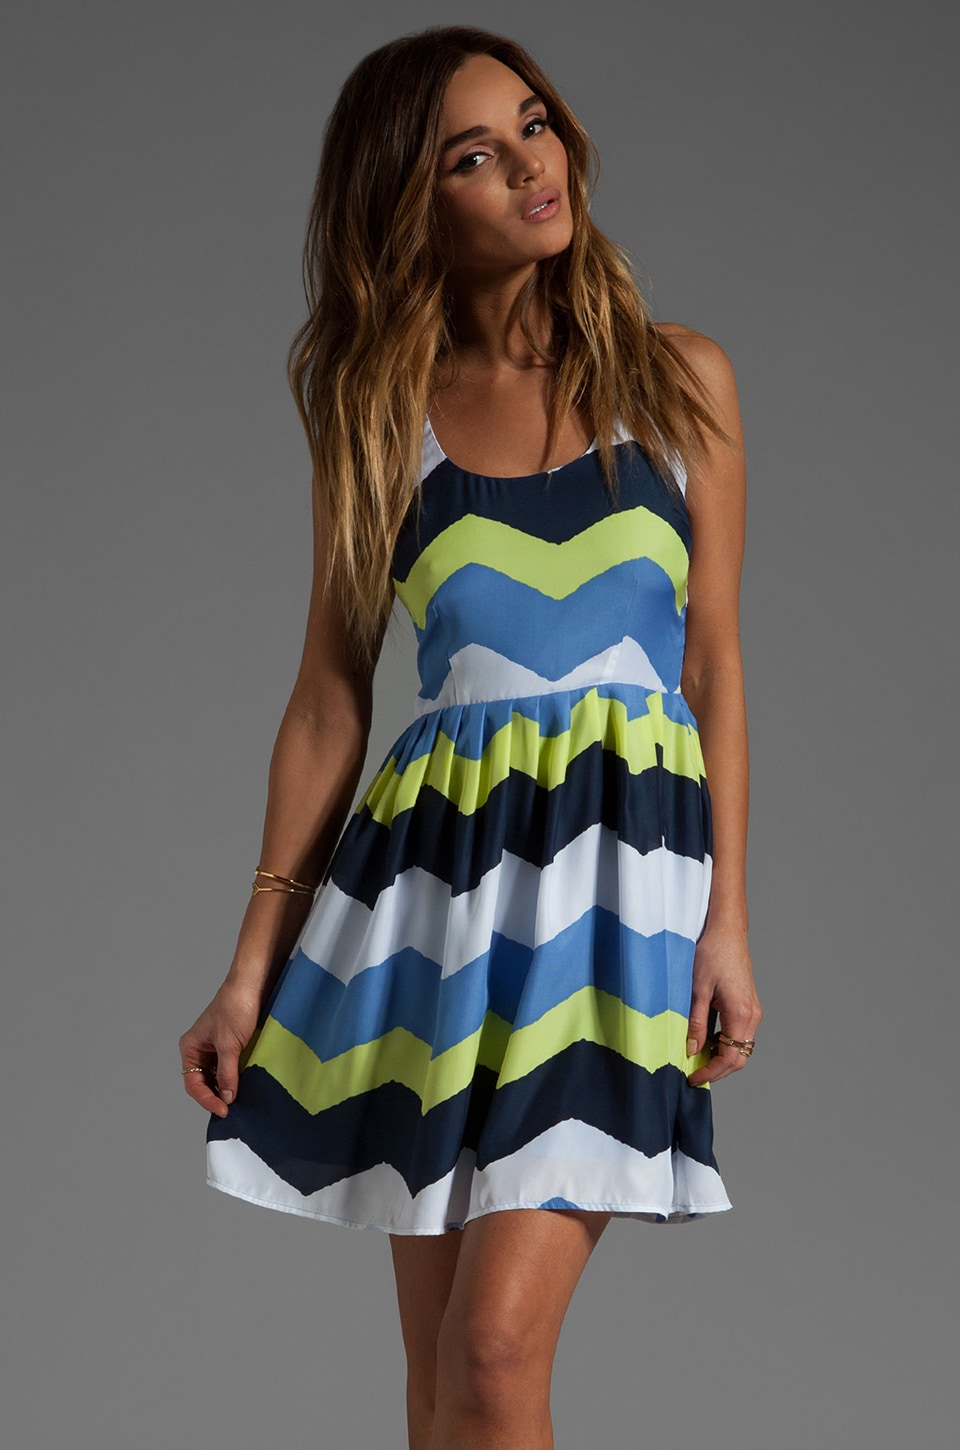 BB Dakota Maggie Painted Zig Zag Printed Dress in Navy Blue